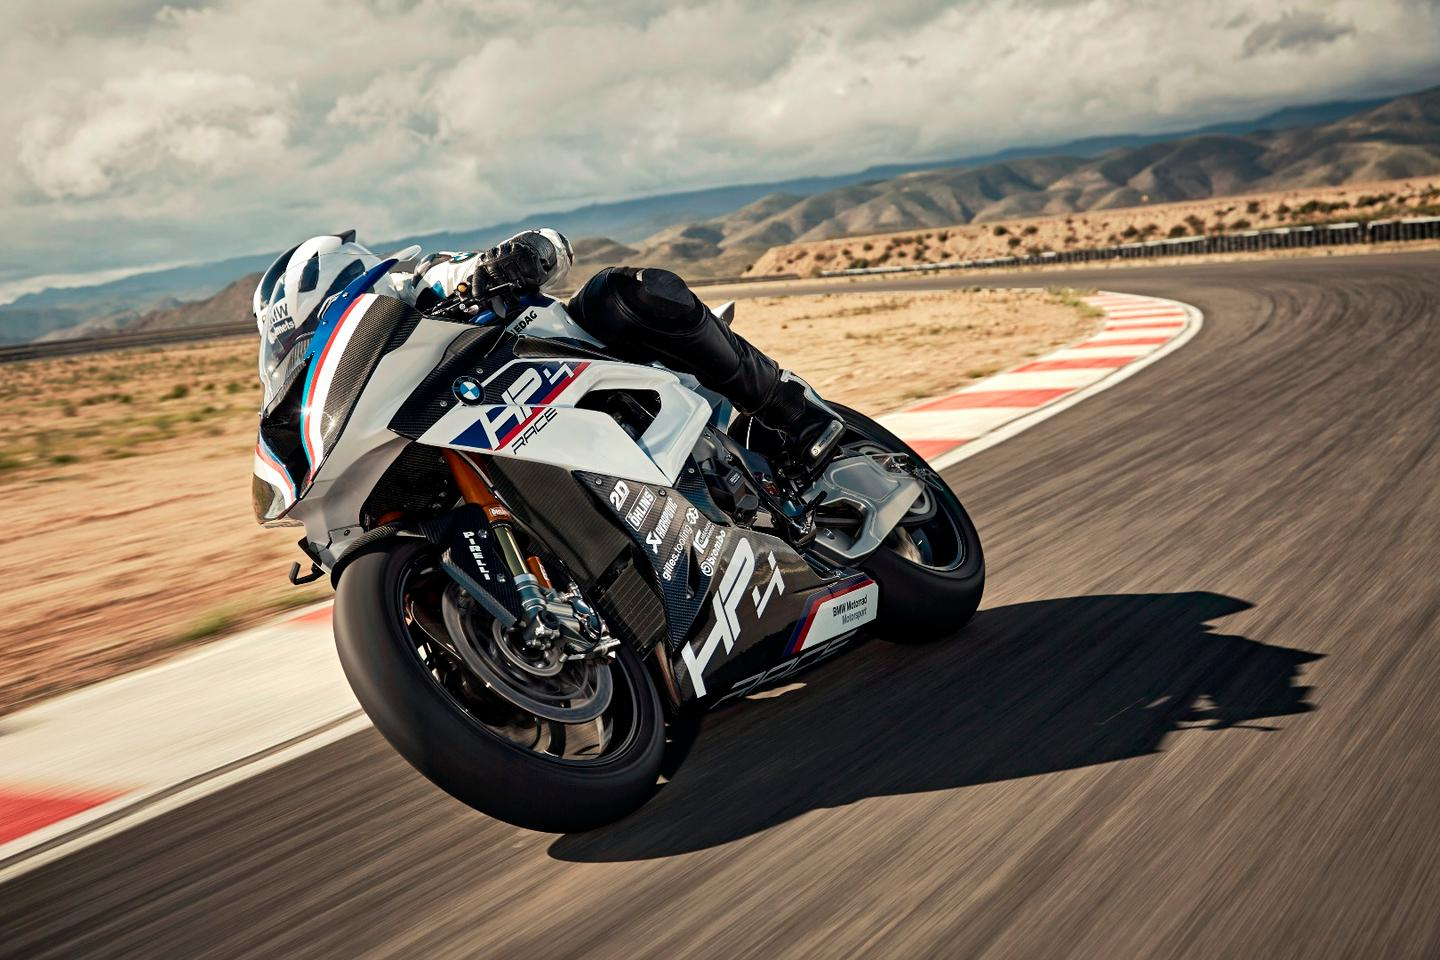 The BMW HP4 Race is ready to hit the track out of the box